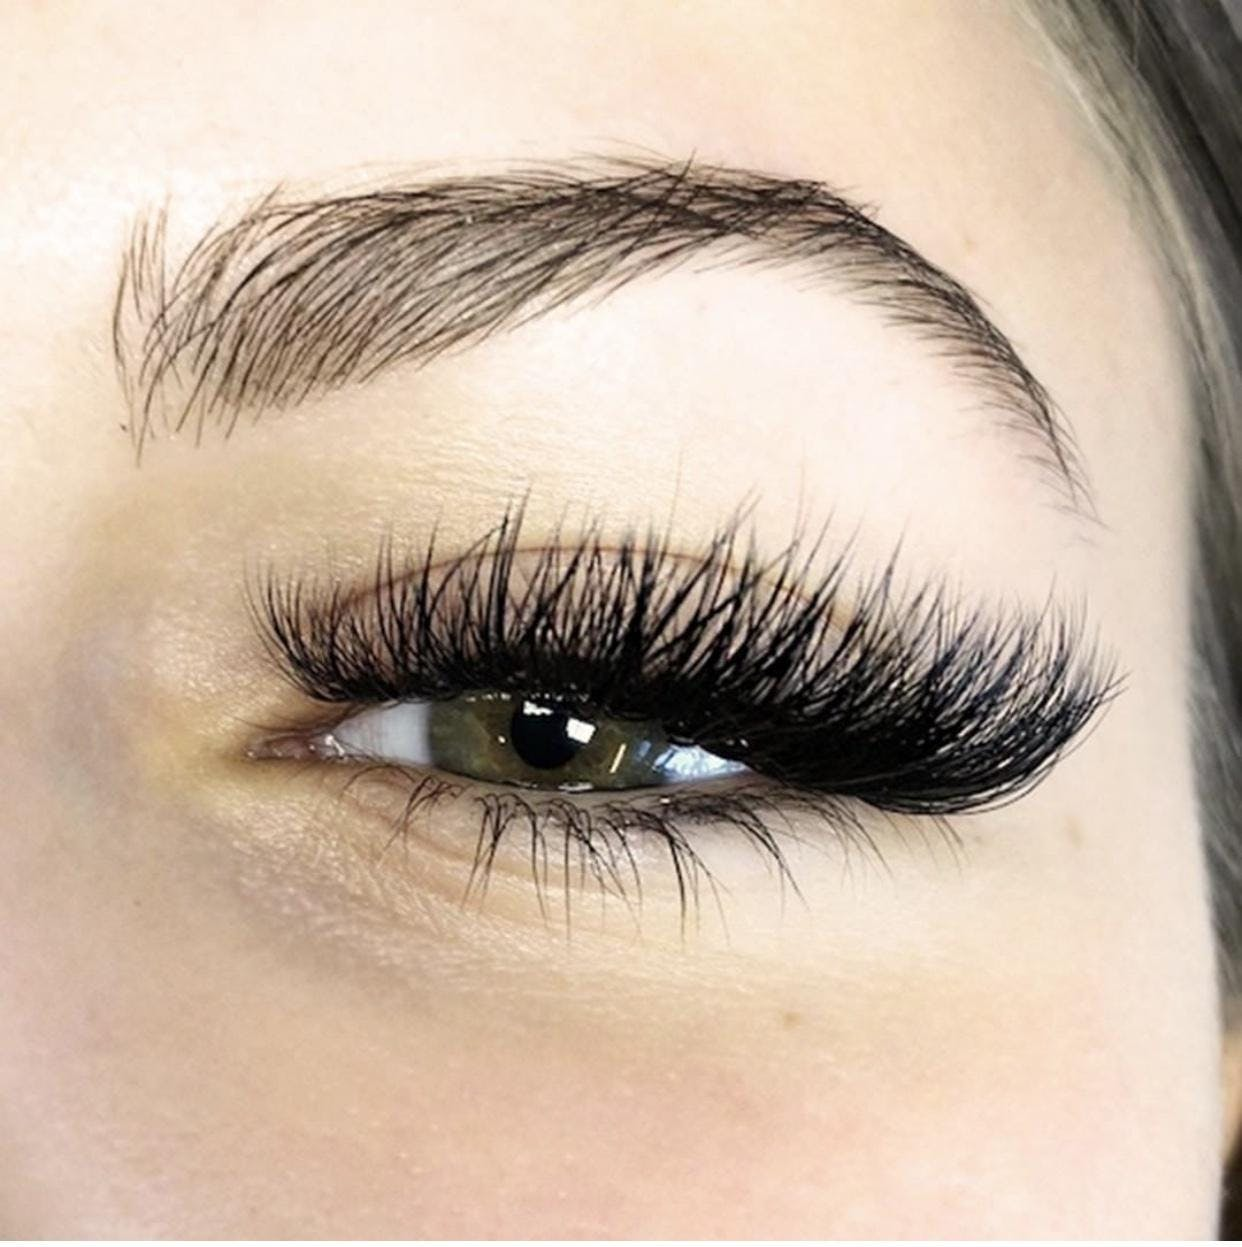 Volume Lash Lash Lifting Course Combo 16 Feb 2019